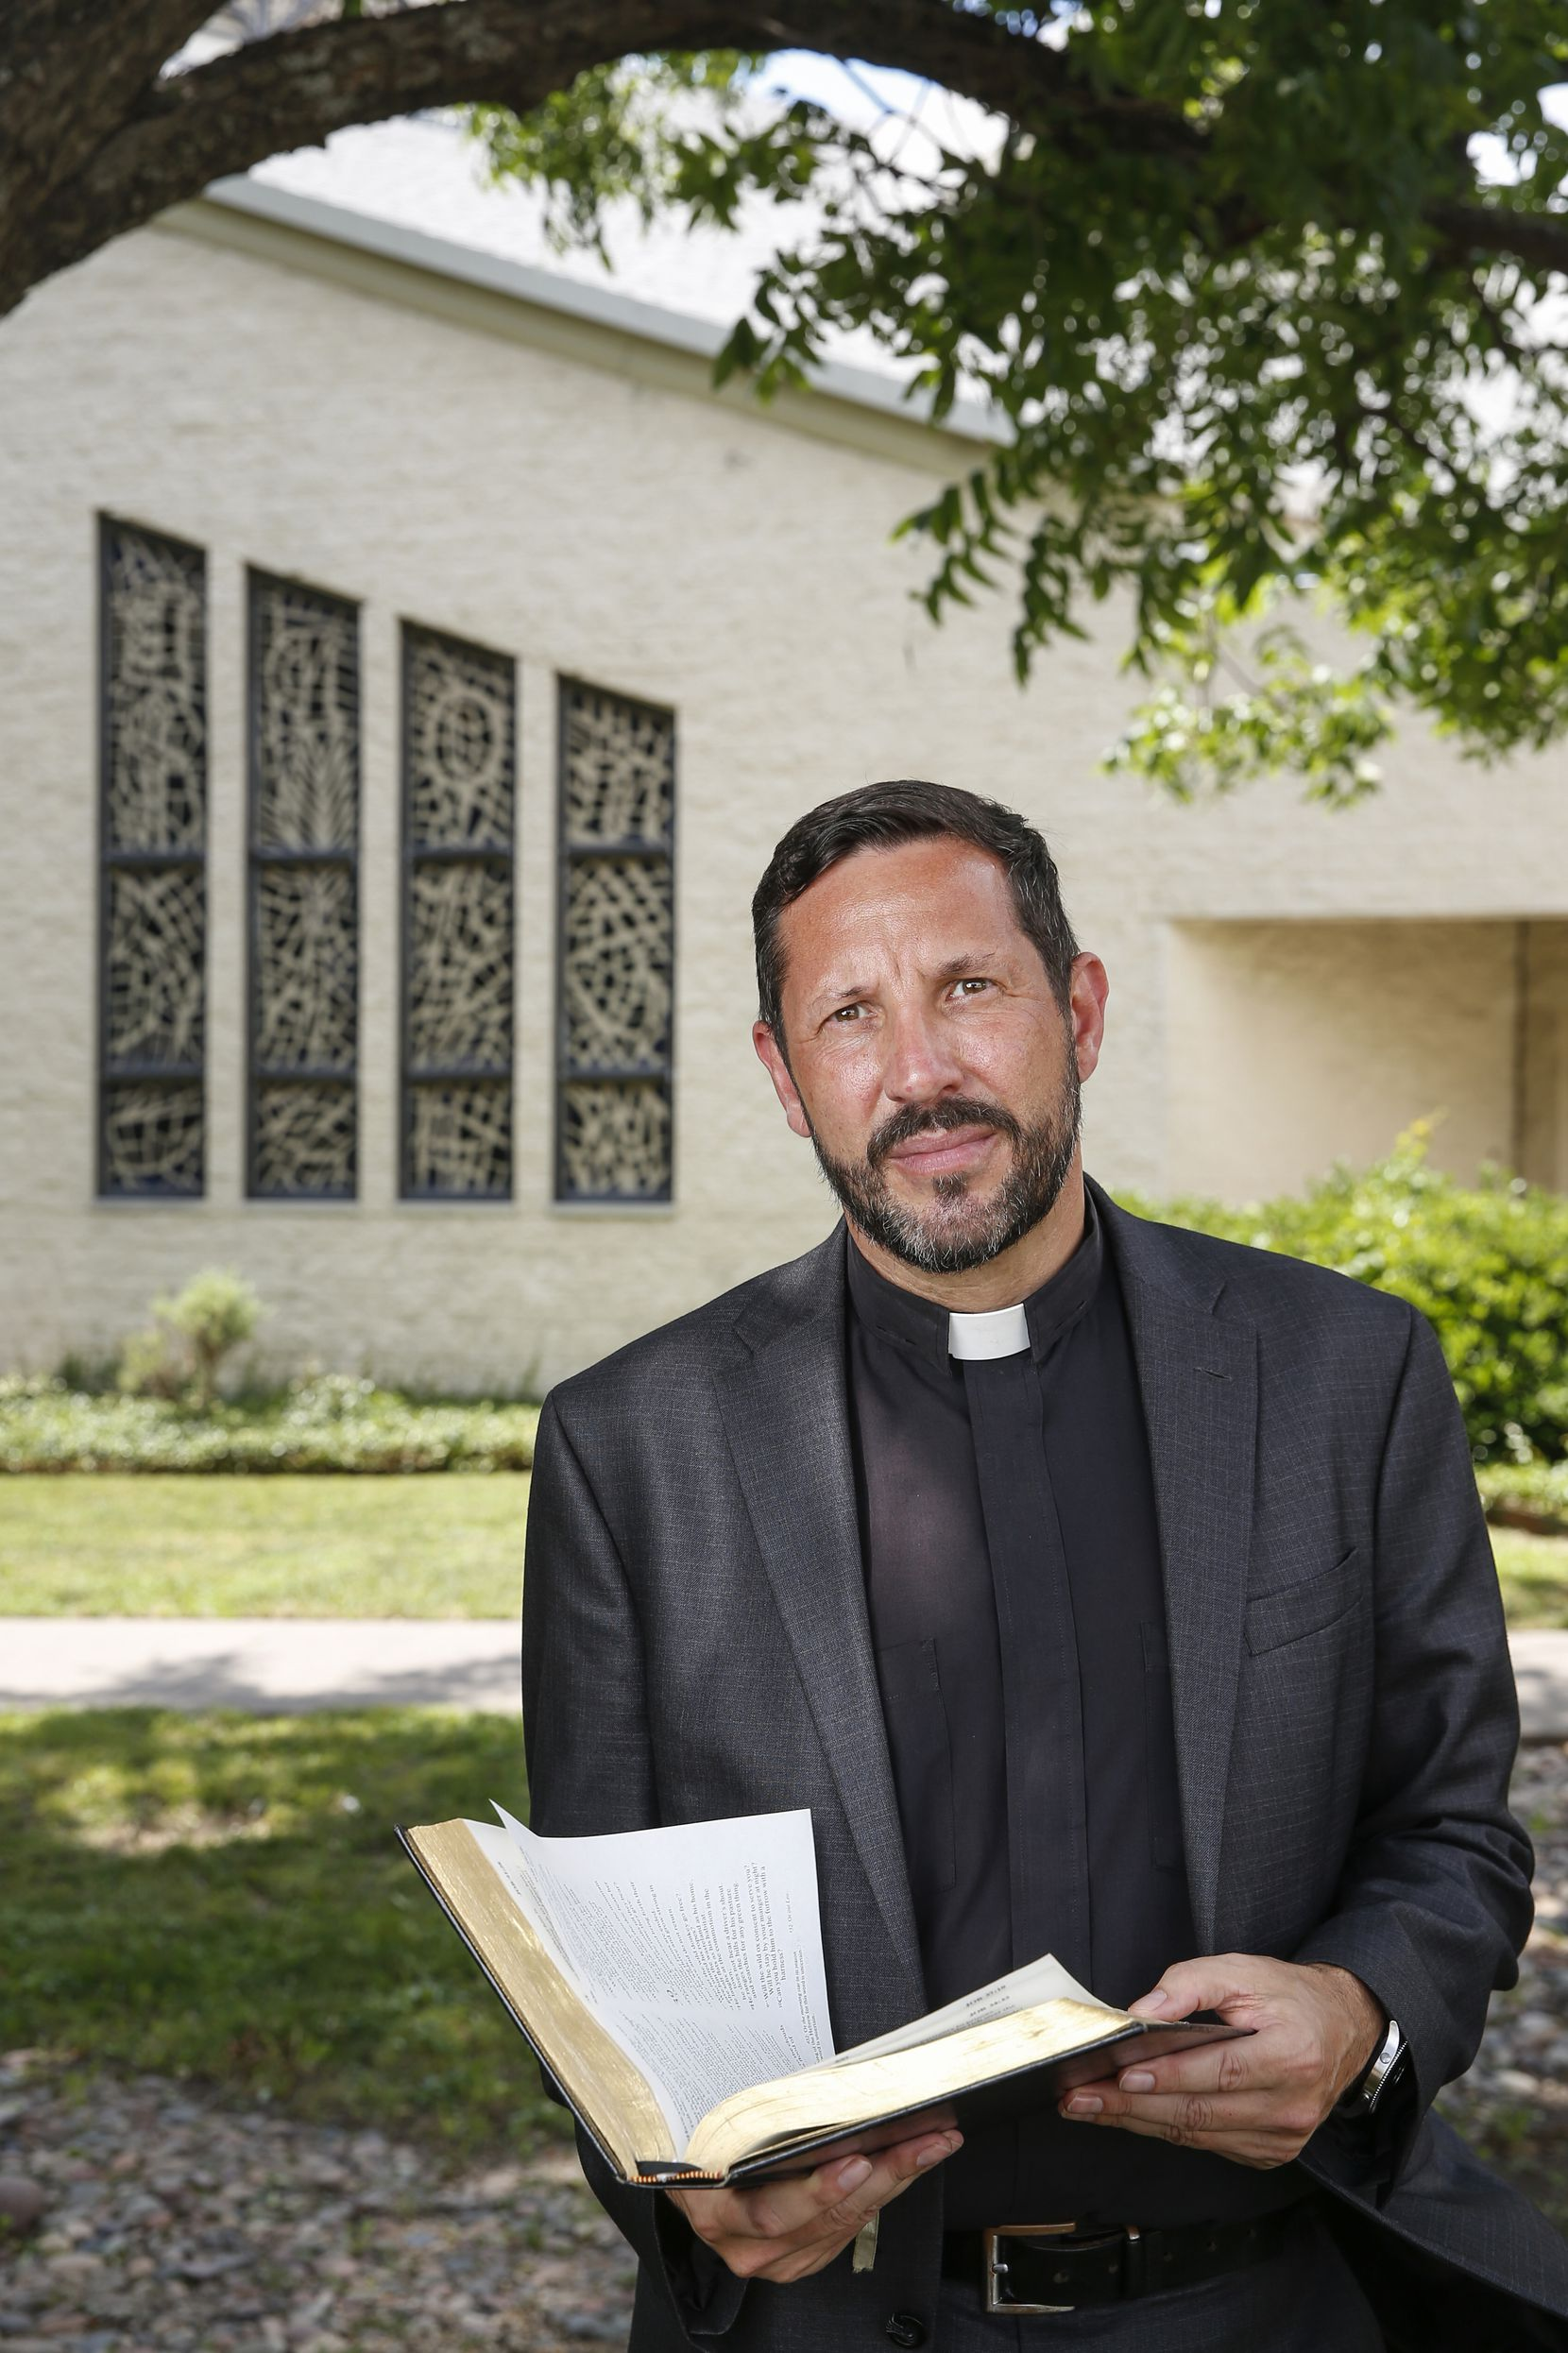 The Rev. Neil Thomas  at Cathedral of Hope on Thursday, June 4, 2020 in Dallas.  Matthew 6:5:  When you pray, do not be like the hypocrites, for they love to pray standing in the synagogues and on the street corners to be seen by others.